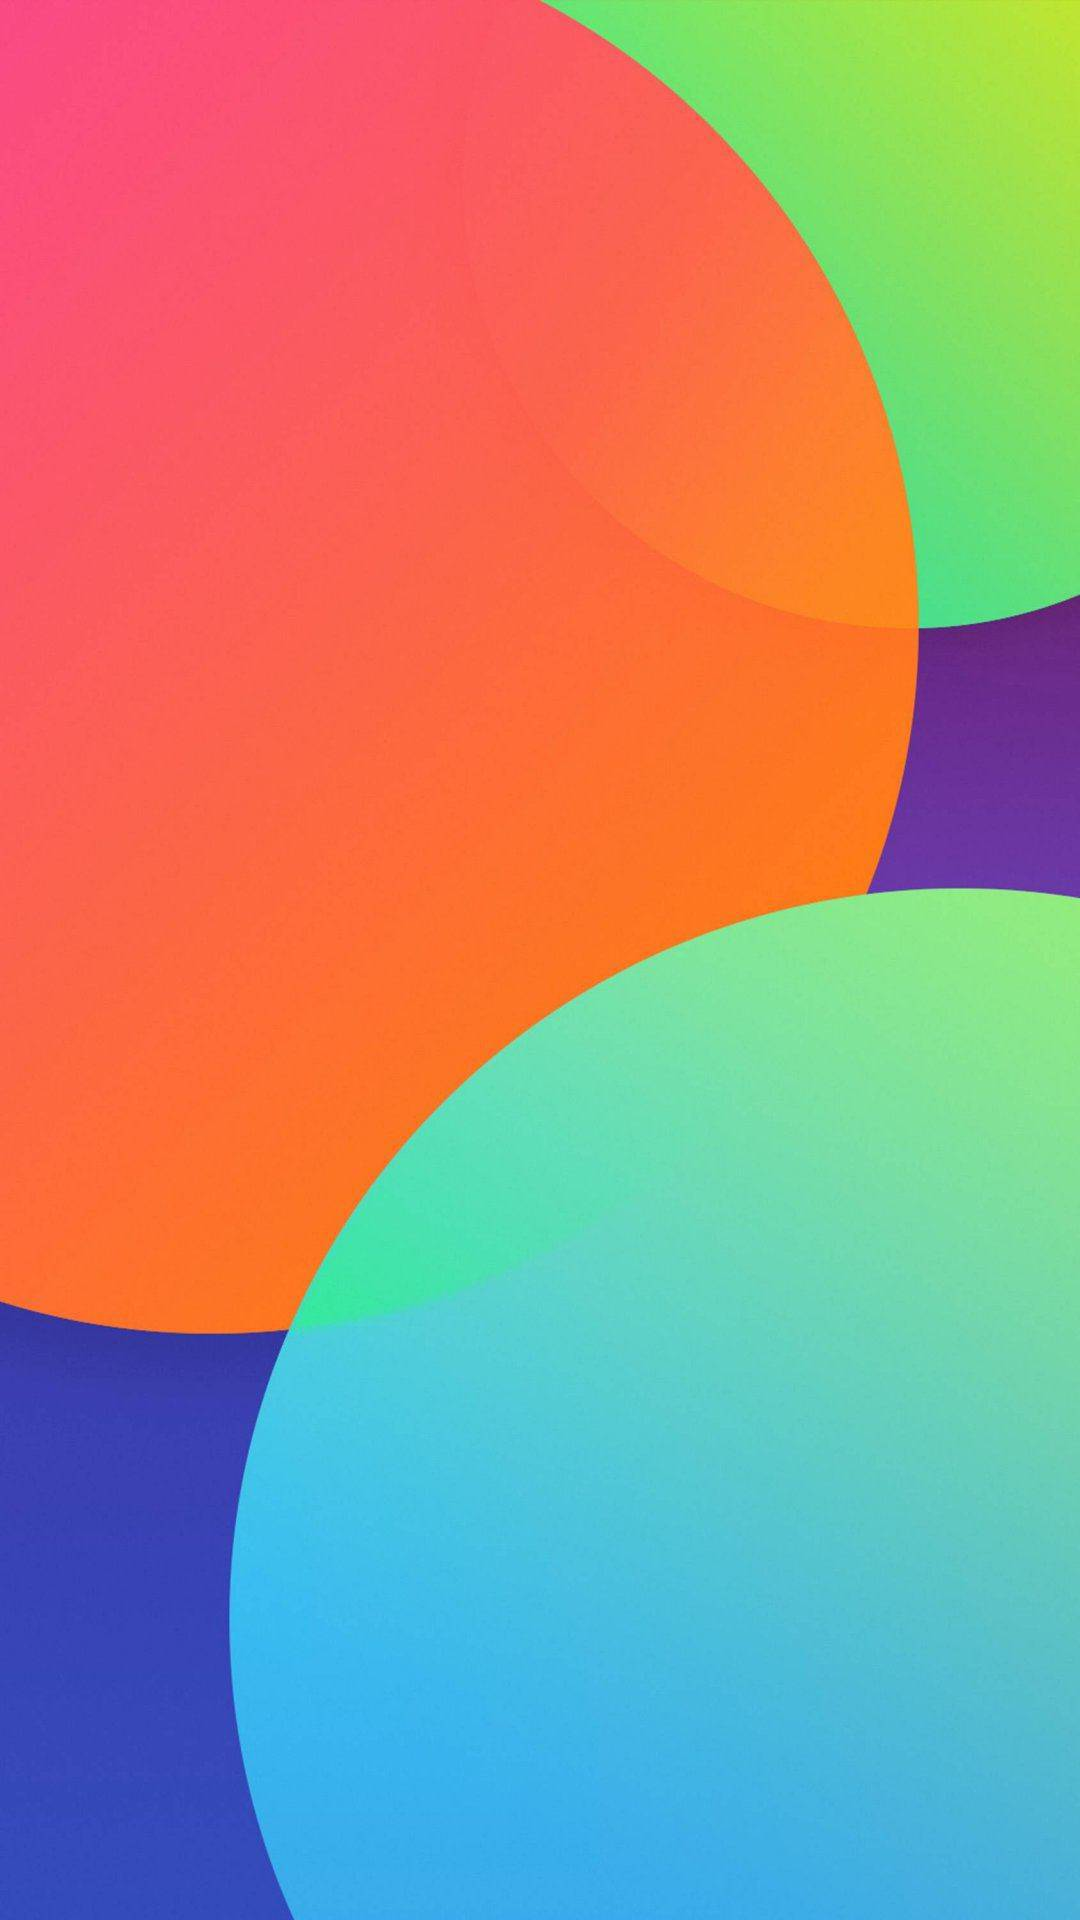 Flyme OS 6 Wallpapers 3